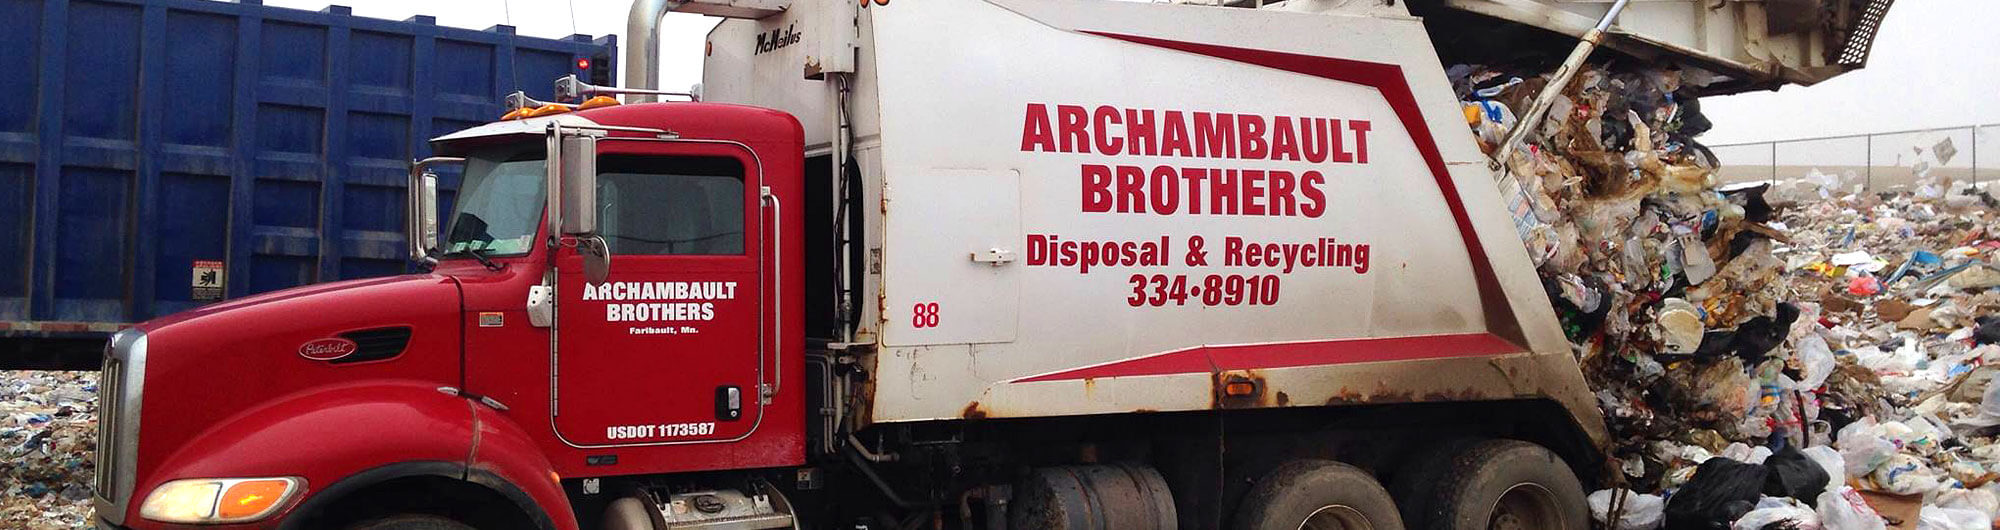 Archambault Brothers Disposal garbage truck dumping a load of trash